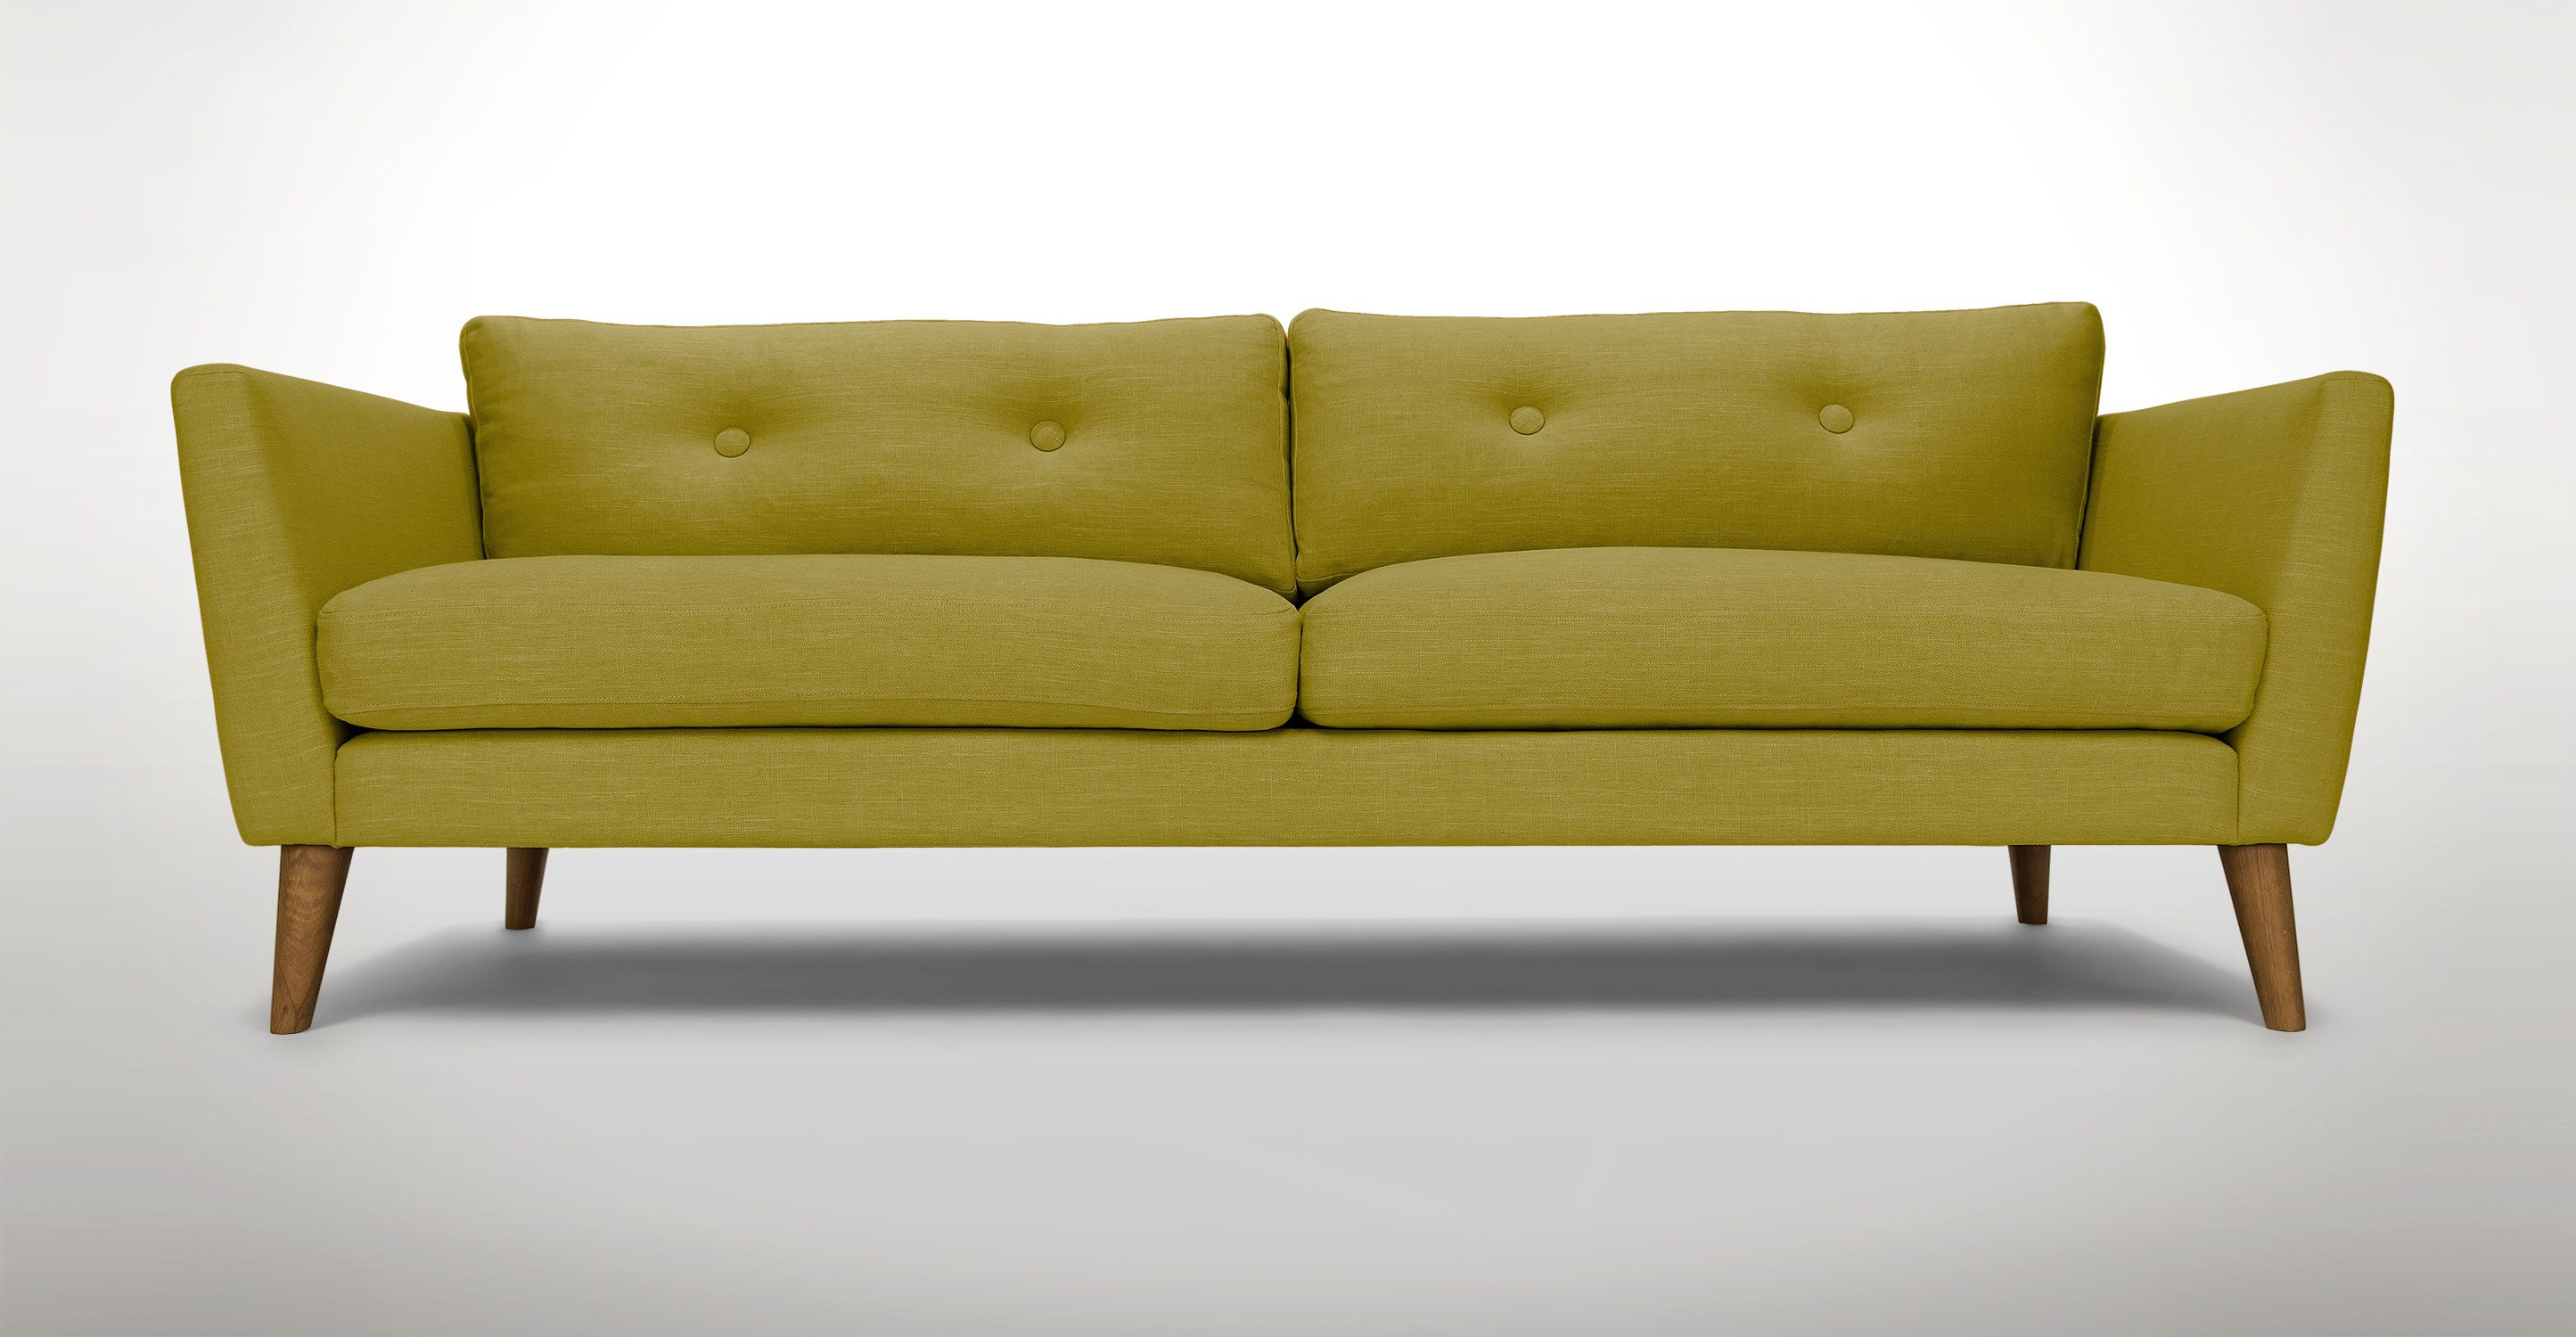 Green Tufted Sofa 3 Seater Solid Wood Legs